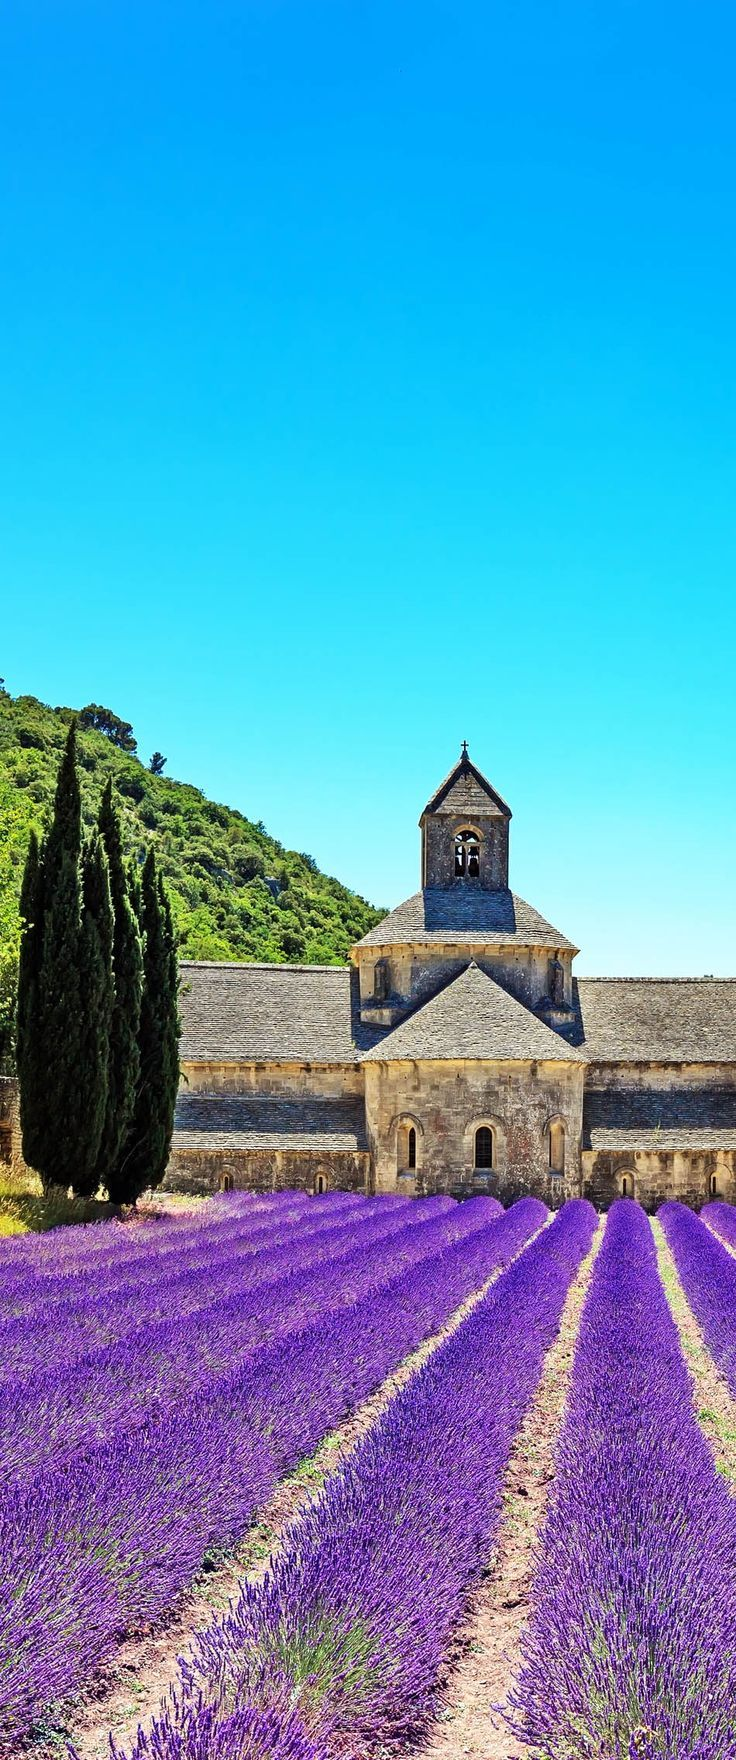 Abbey of Senanque and blooming rows lavender flowers. Gordes, Luberon, Vaucluse, Provence, France, Europe